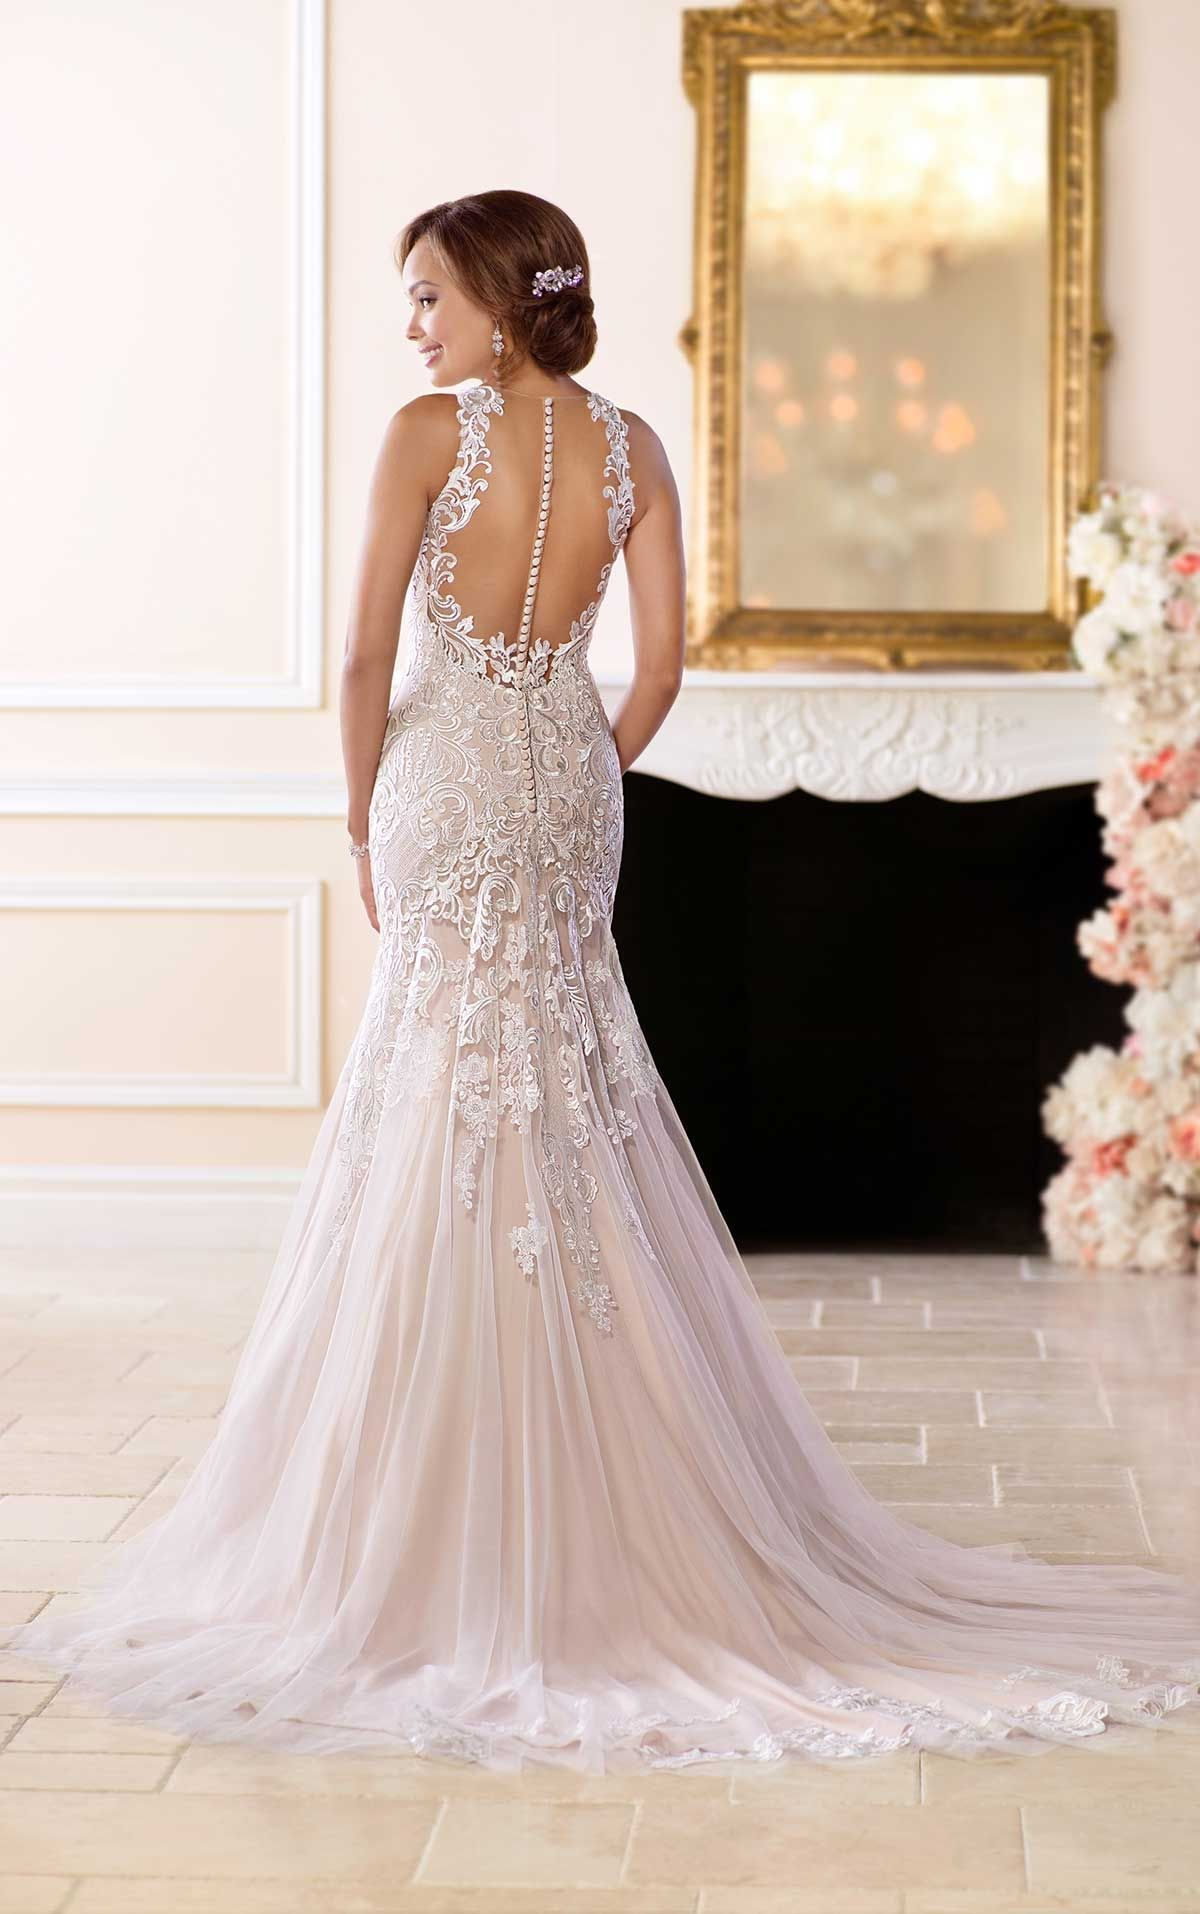 6600 Wedding Dresses In Newport Cardiff South Wales At All About Eve Bridal Stella York Wedding Dress Ball Gown Wedding Dress Mermaid Dresses